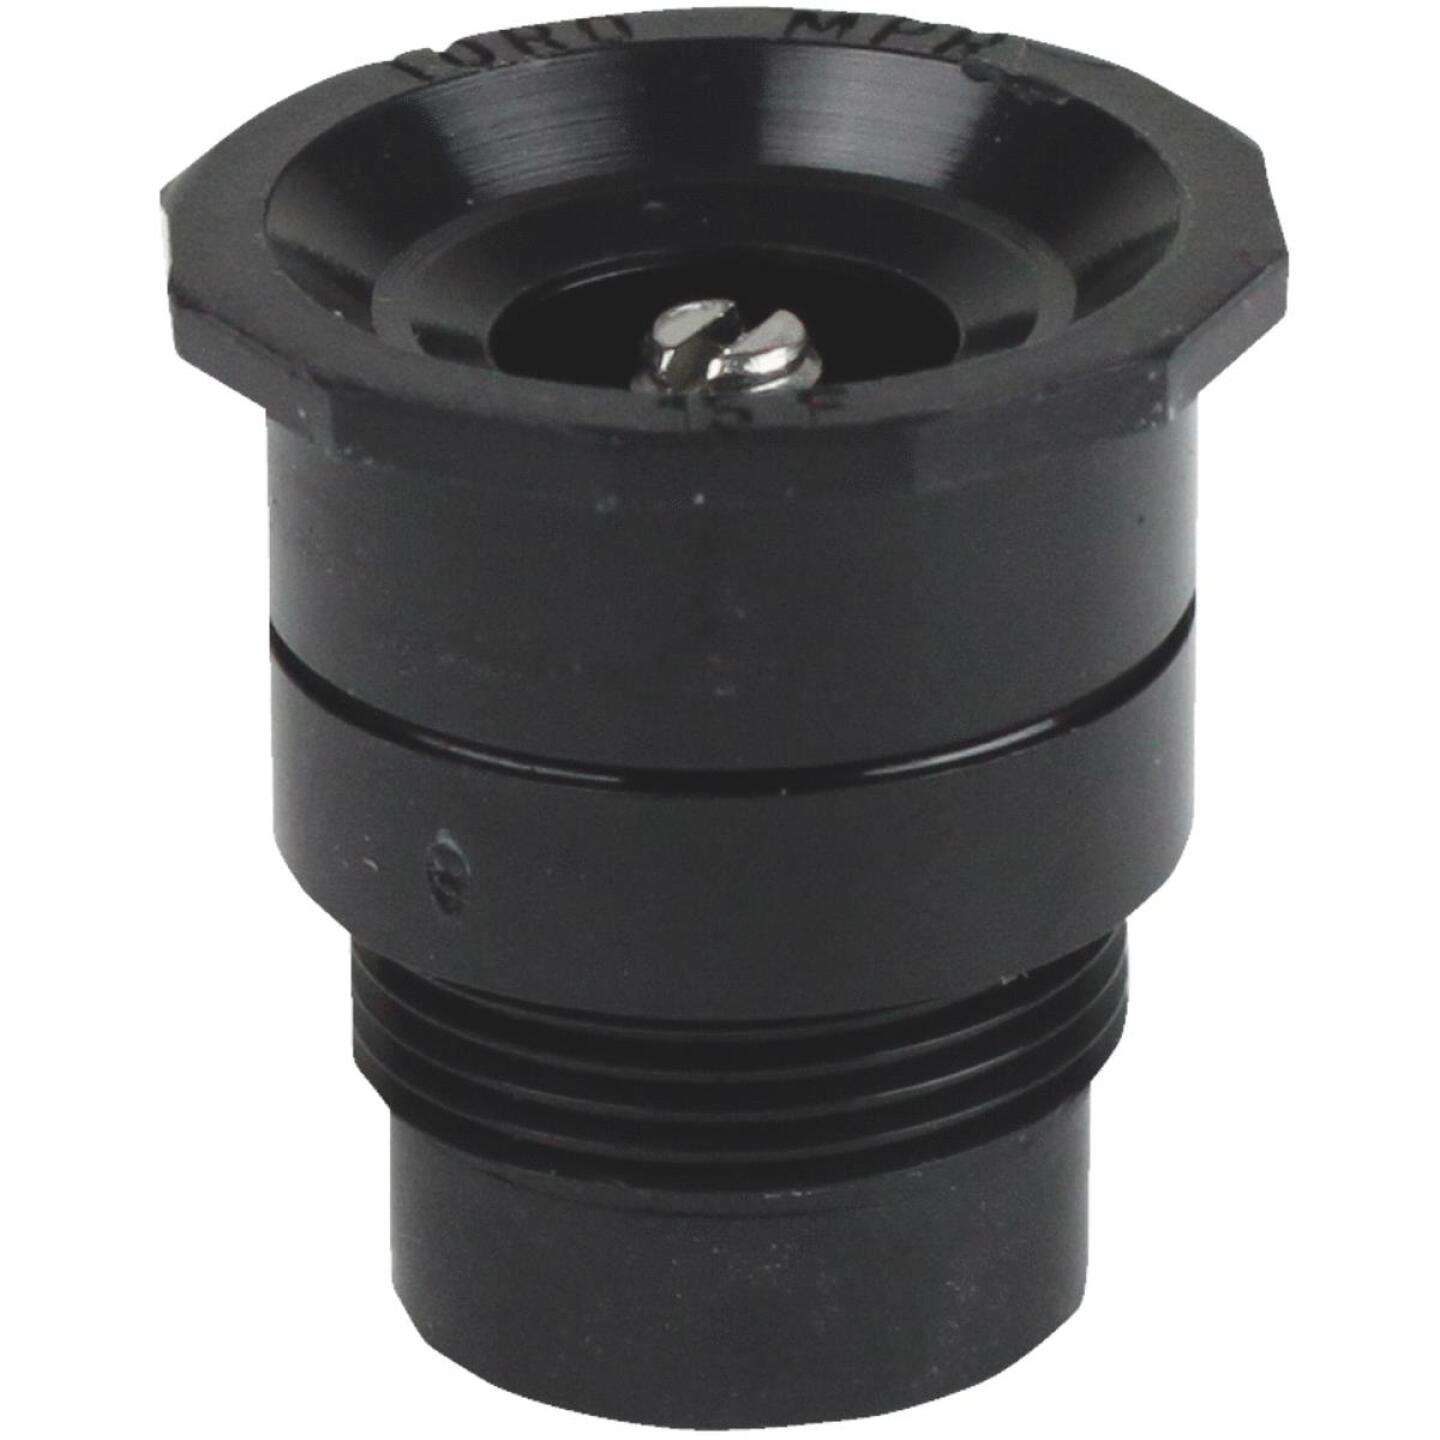 Toro Full Circle 15 Ft. Replacement Nozzle Image 1